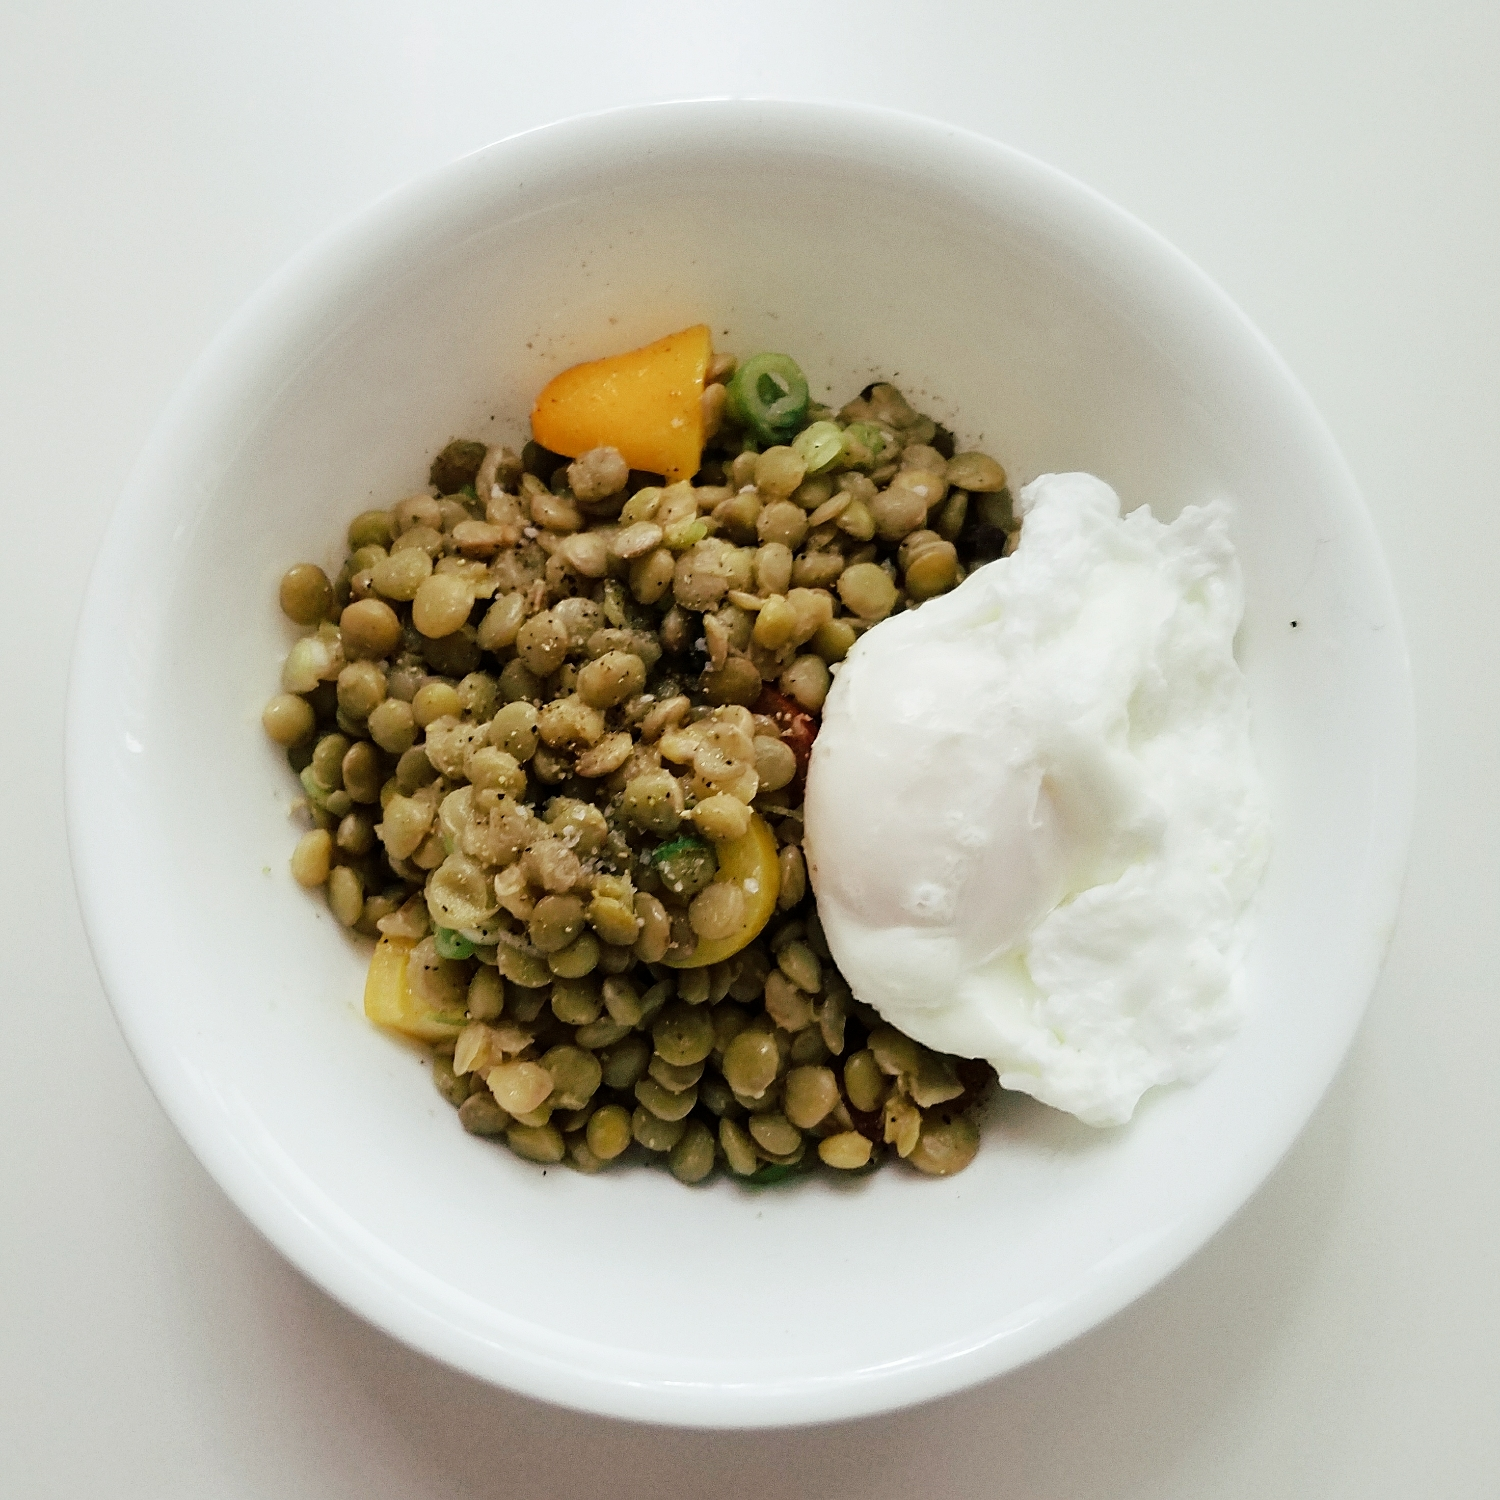 Made a giant batch of lentils for lunch, and topped with a poached egg. Everything is better with a poached egg!